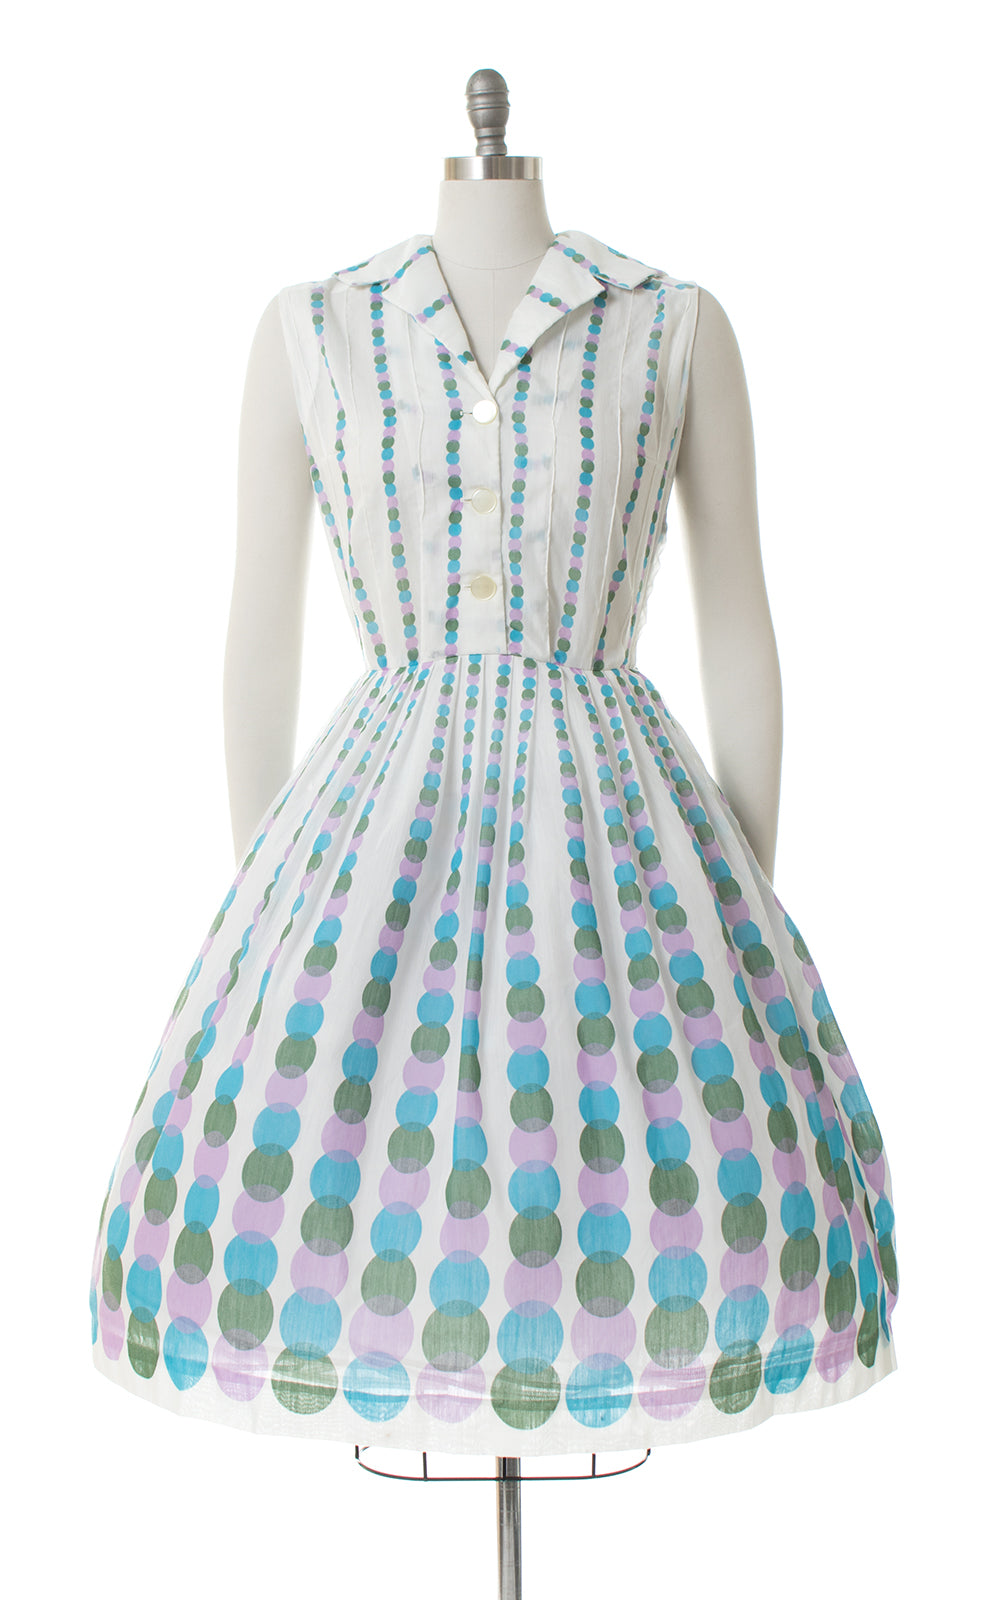 1950s Graduated Polka Dot Shirtwaist Sundress